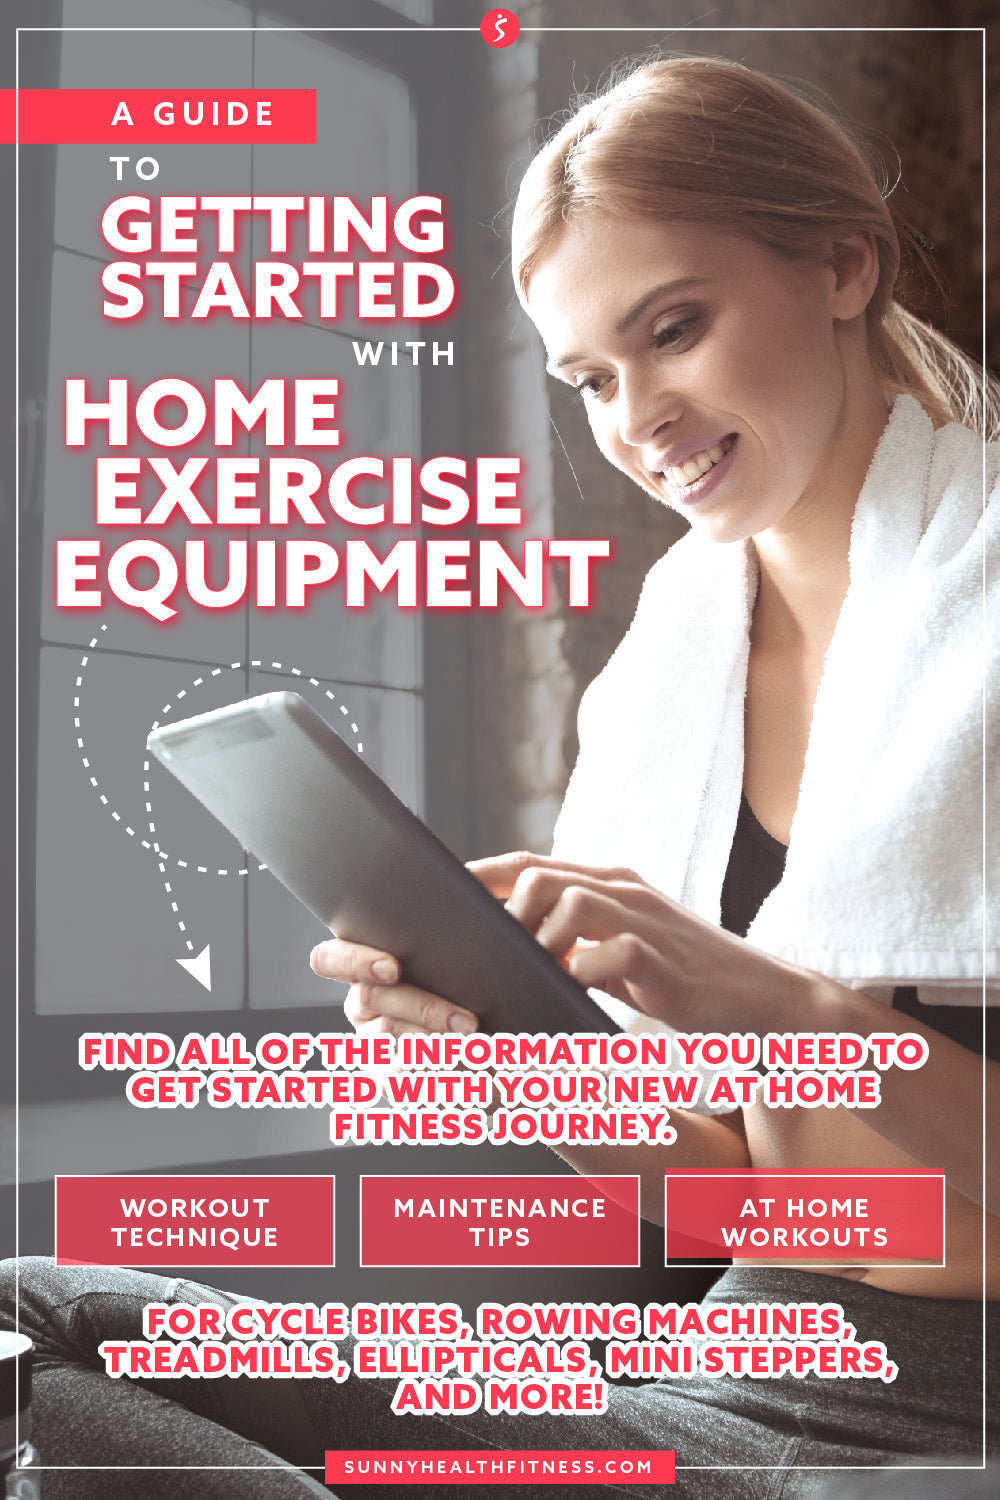 A Guide to Getting Started with Home Exercise Equipment Infographic